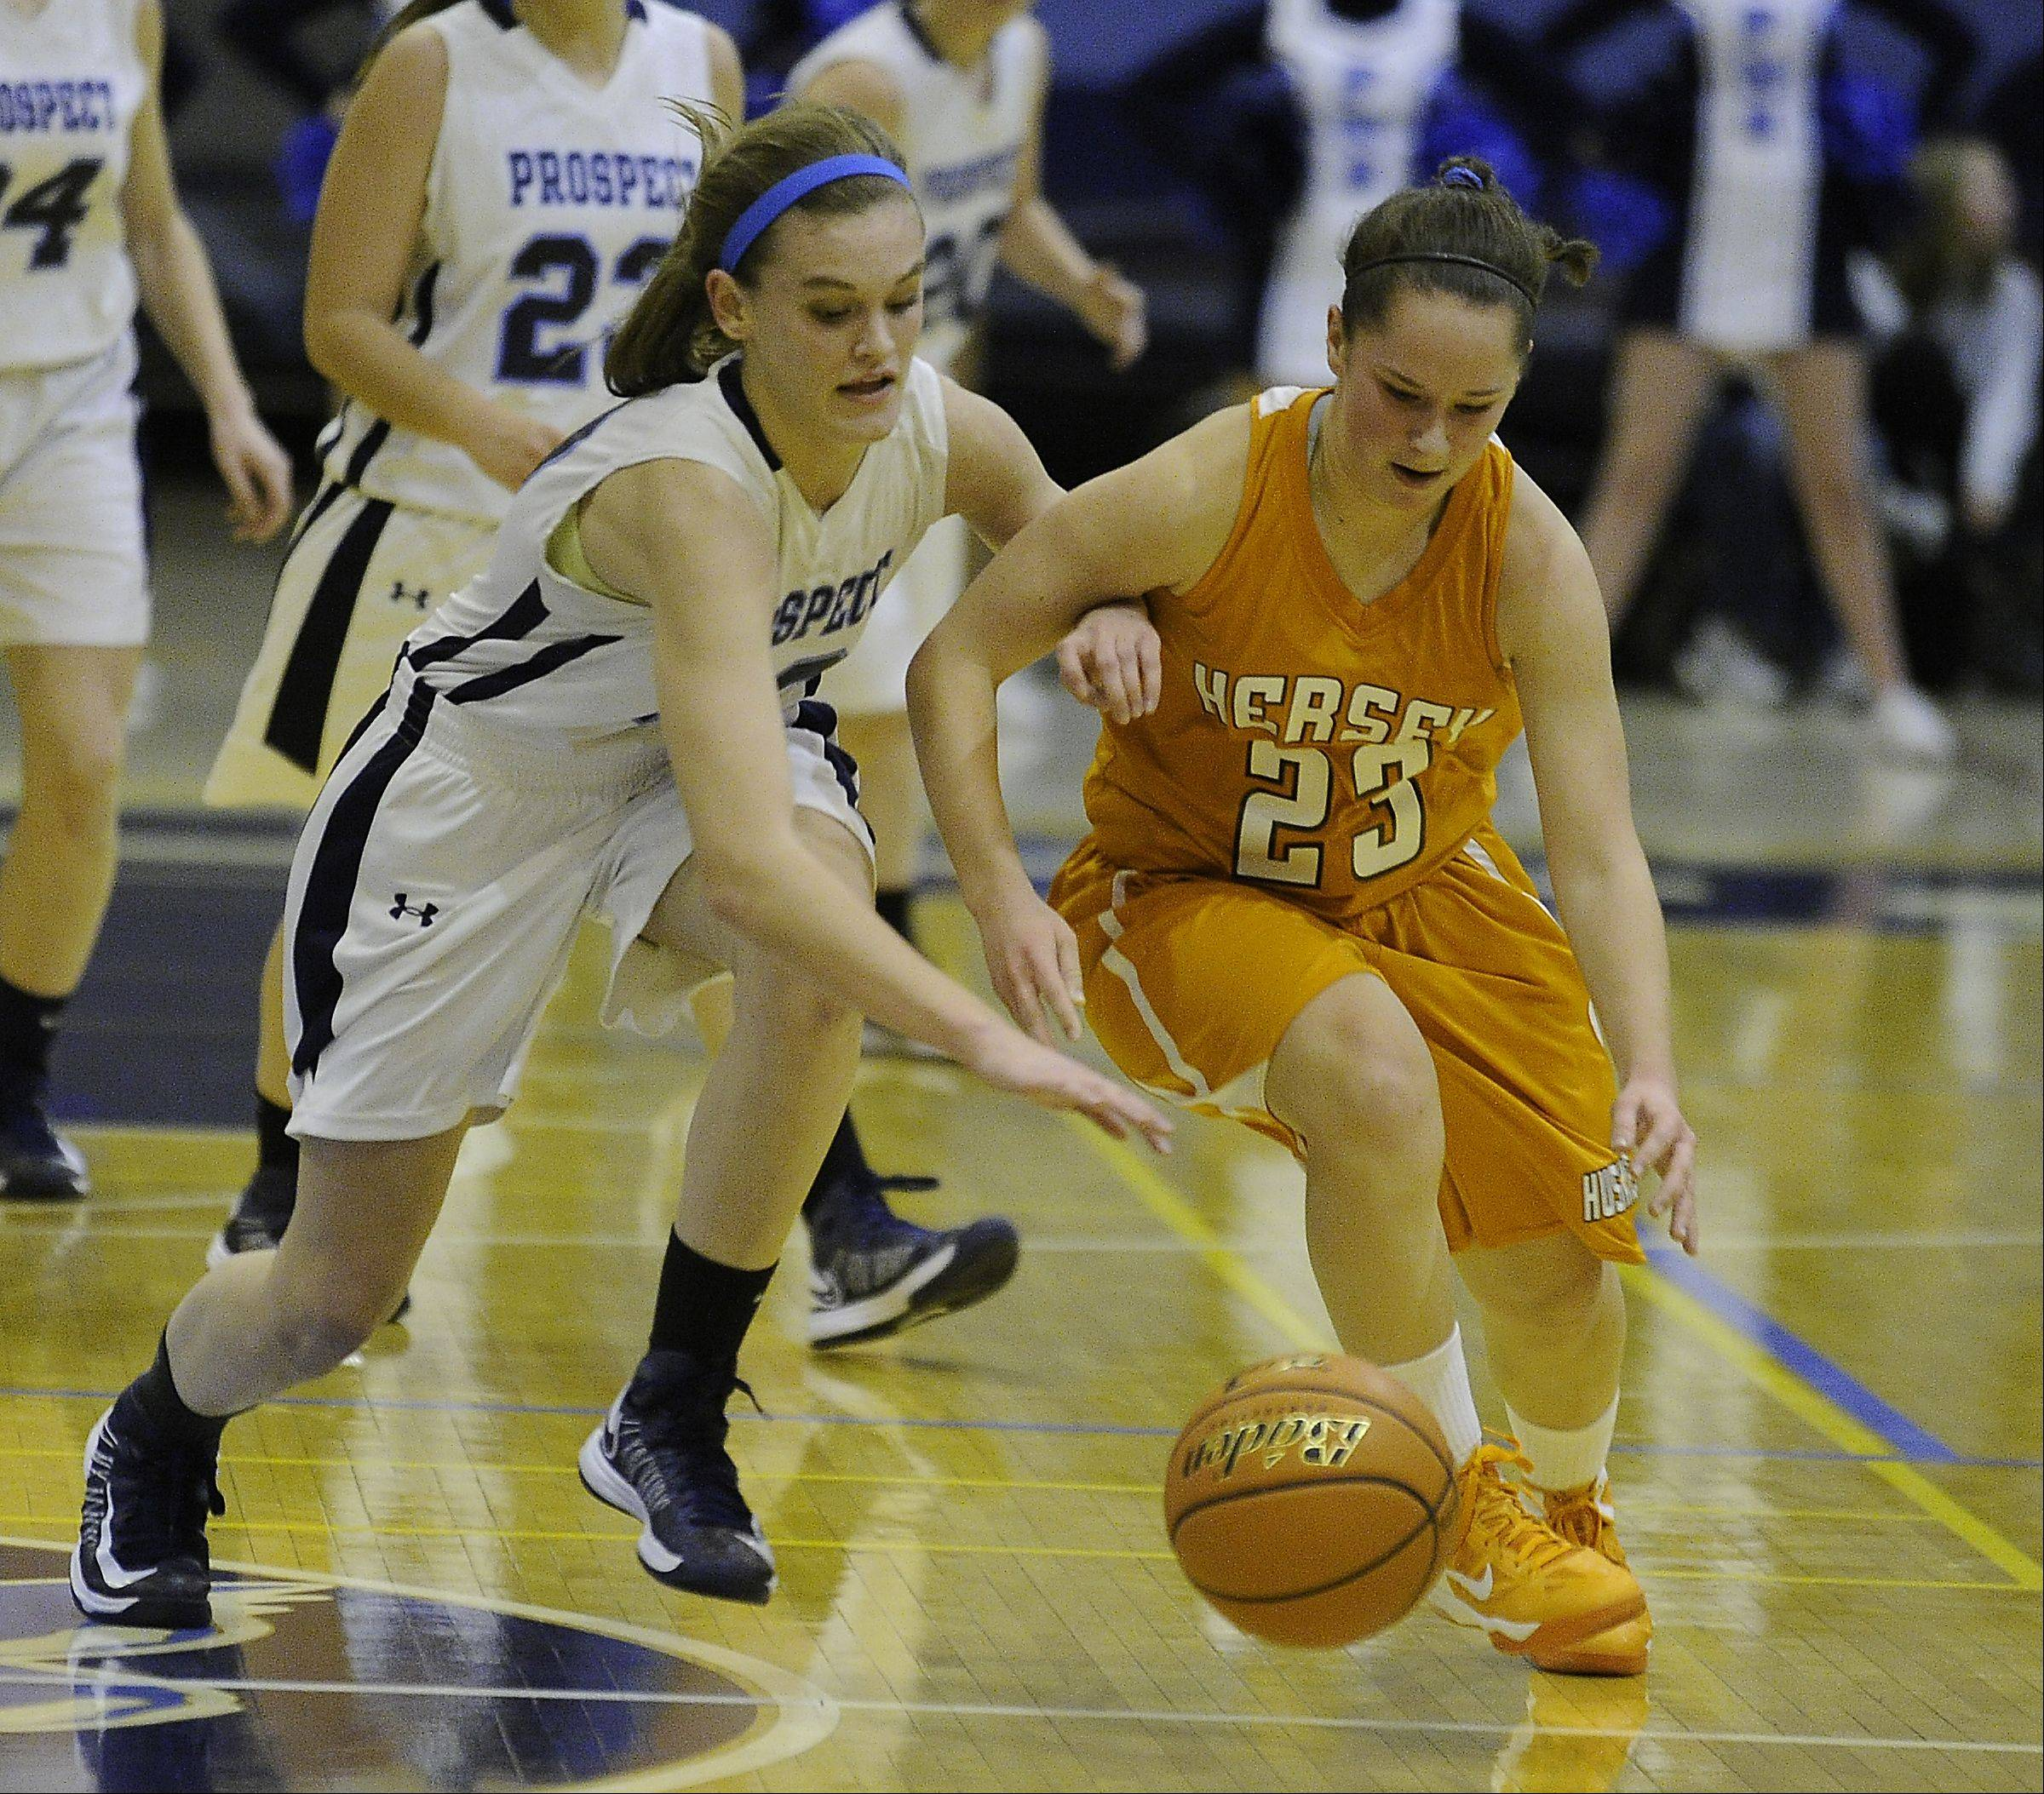 Prospect's Taylor Will chases down a loose ball with Hersey's Casey Weyhrich in the first half.